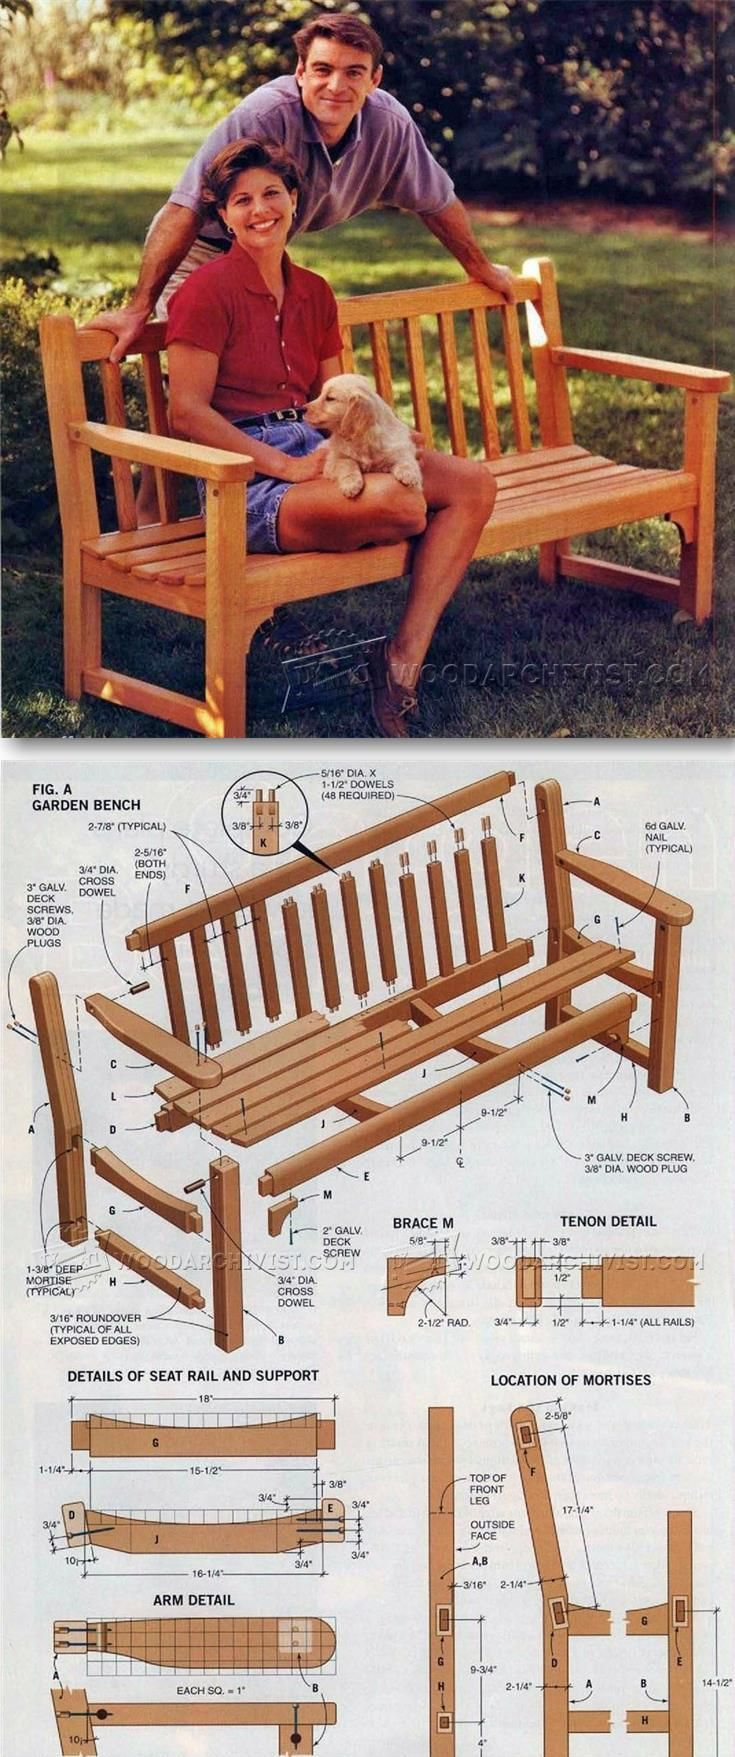 Garden Bench Plans   Outdoor Furniture Plans And Projects |  WoodArchivist.com